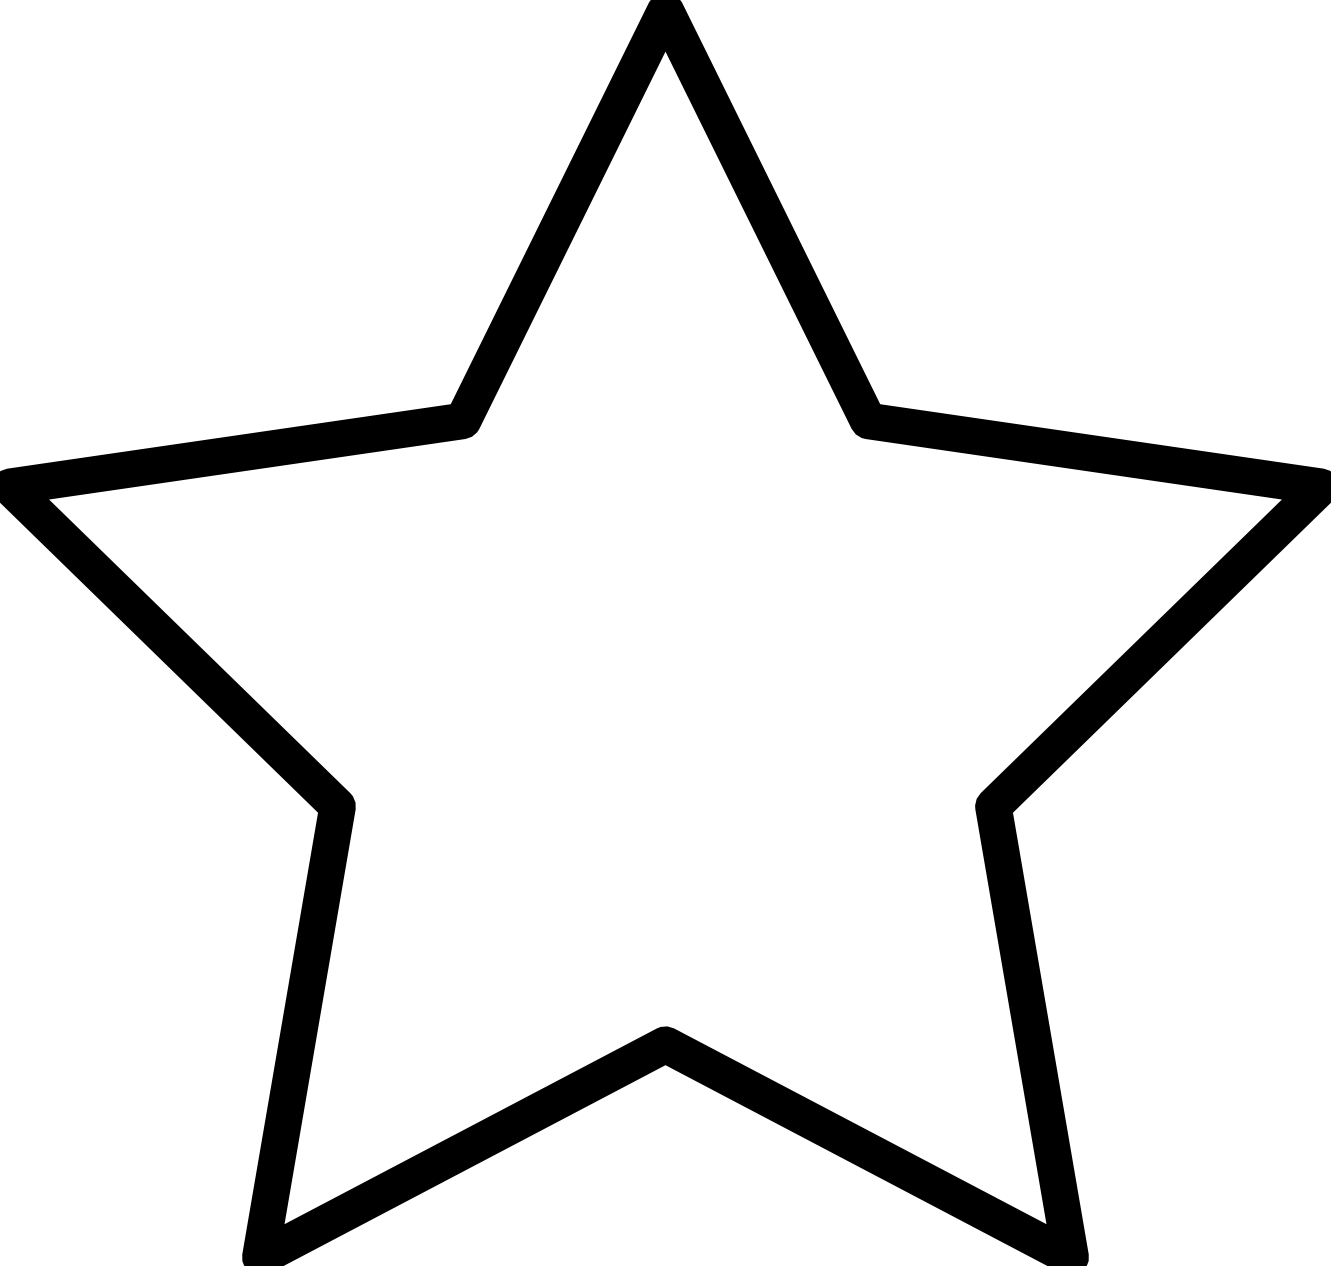 Clipart star black and white svg freeuse Star Clip Art Black And White | Clipart Panda - Free Clipart Images svg freeuse